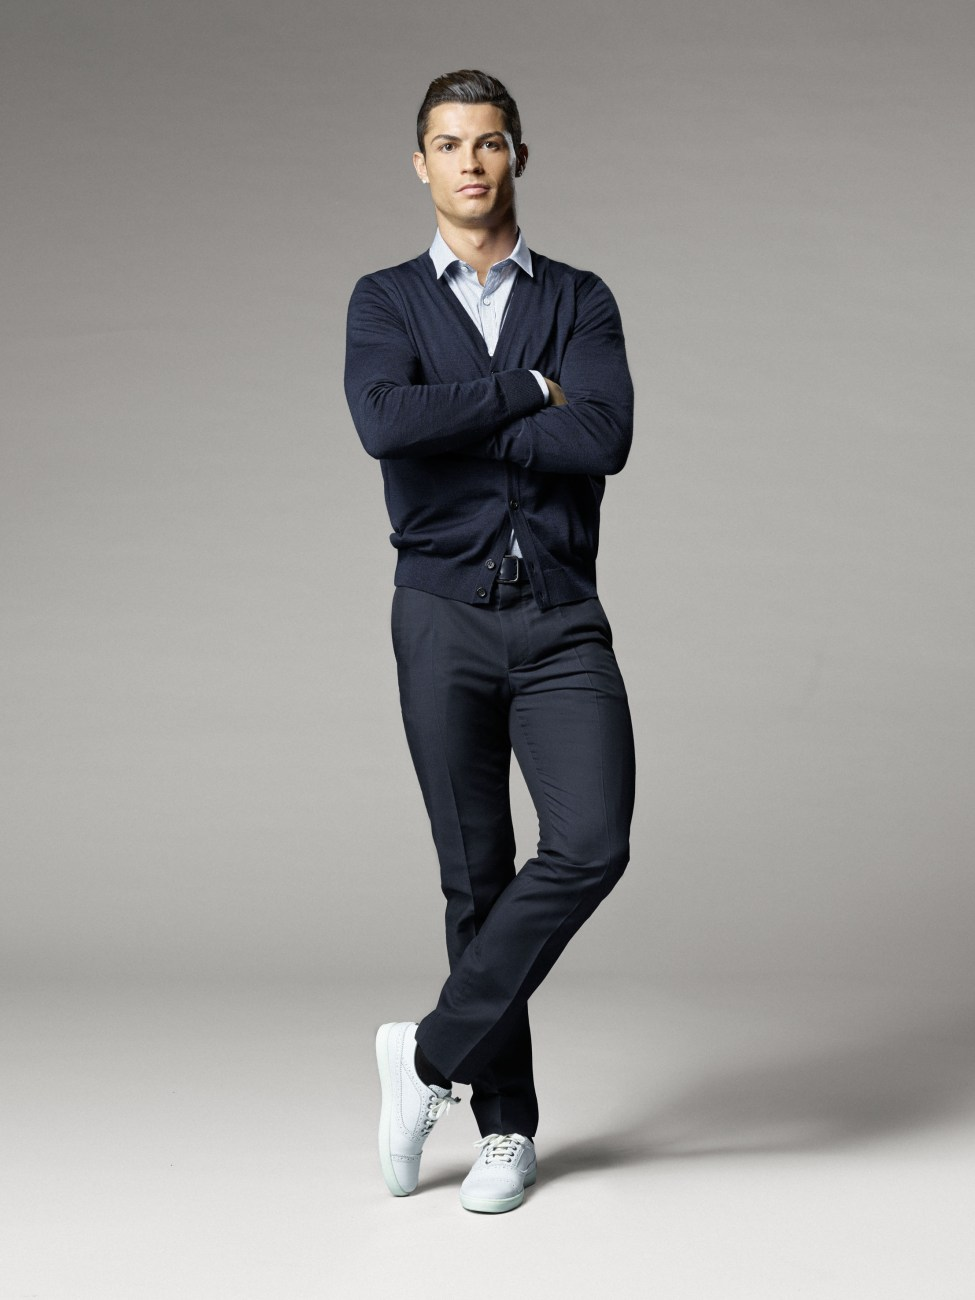 about.cr7footwear.com/